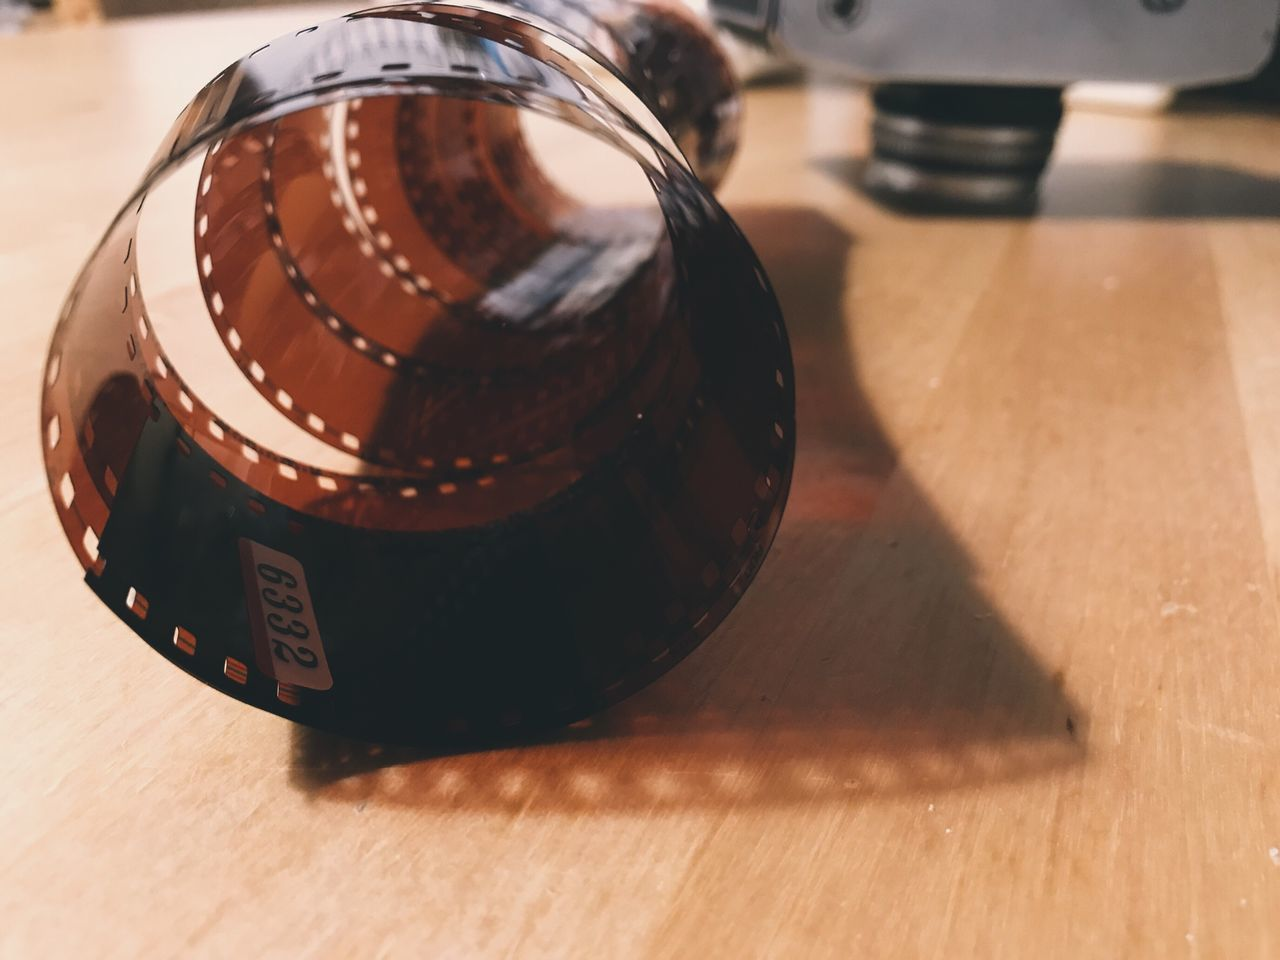 172/365 Table Indoors  Still Life No People Film Reel Close-up Camera - Photographic Equipment Film Industry Day